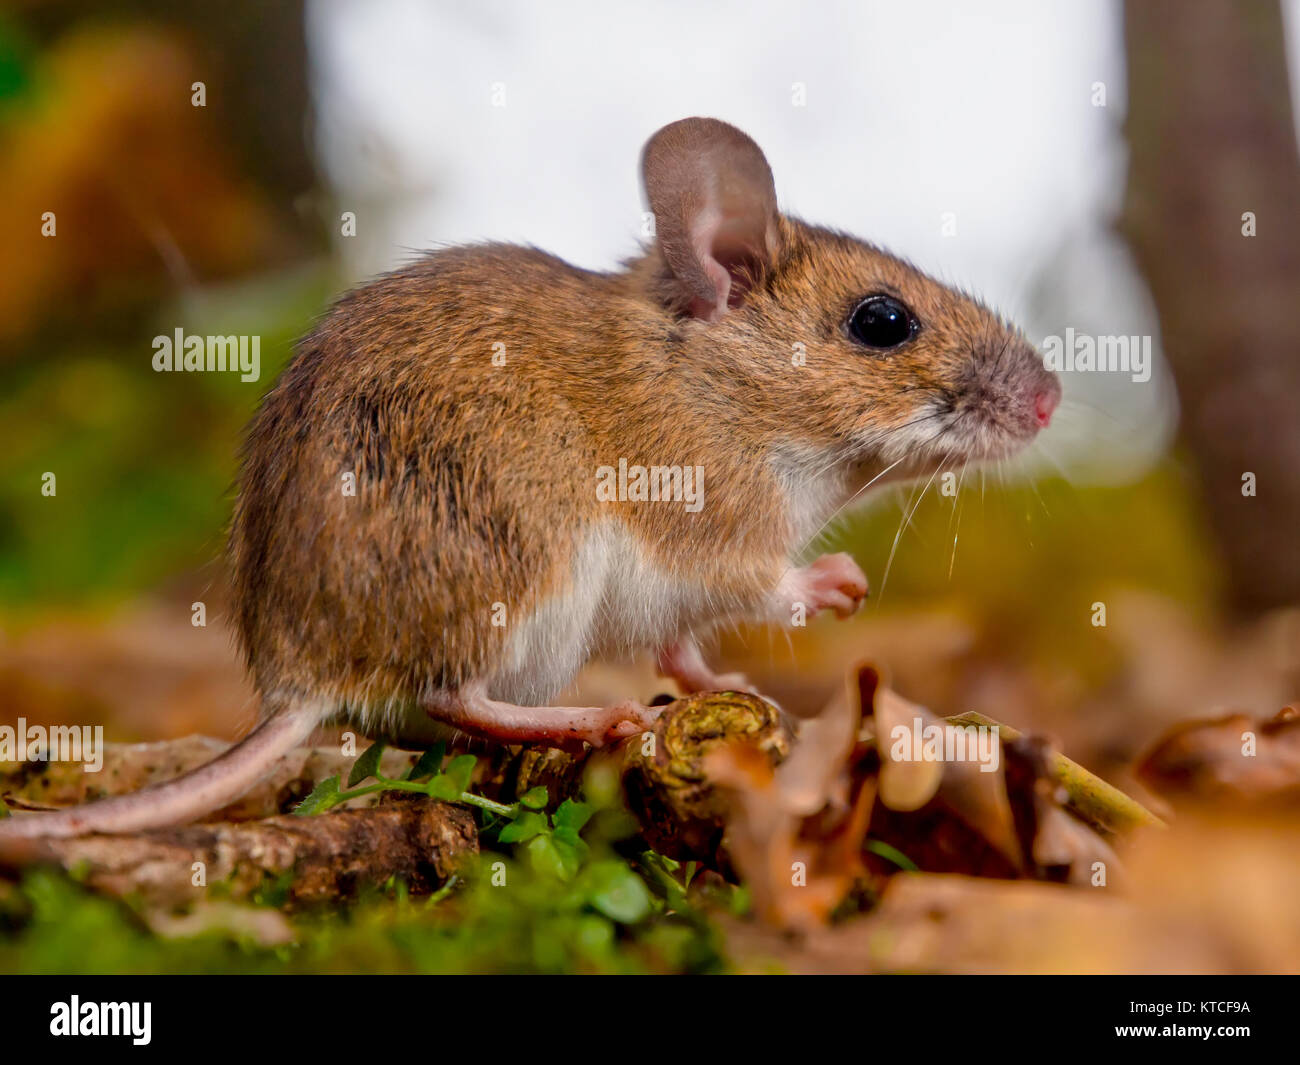 Yellow necked mouse (Apodemus flavicollis) seen from side in natural forest habitat - Stock Image